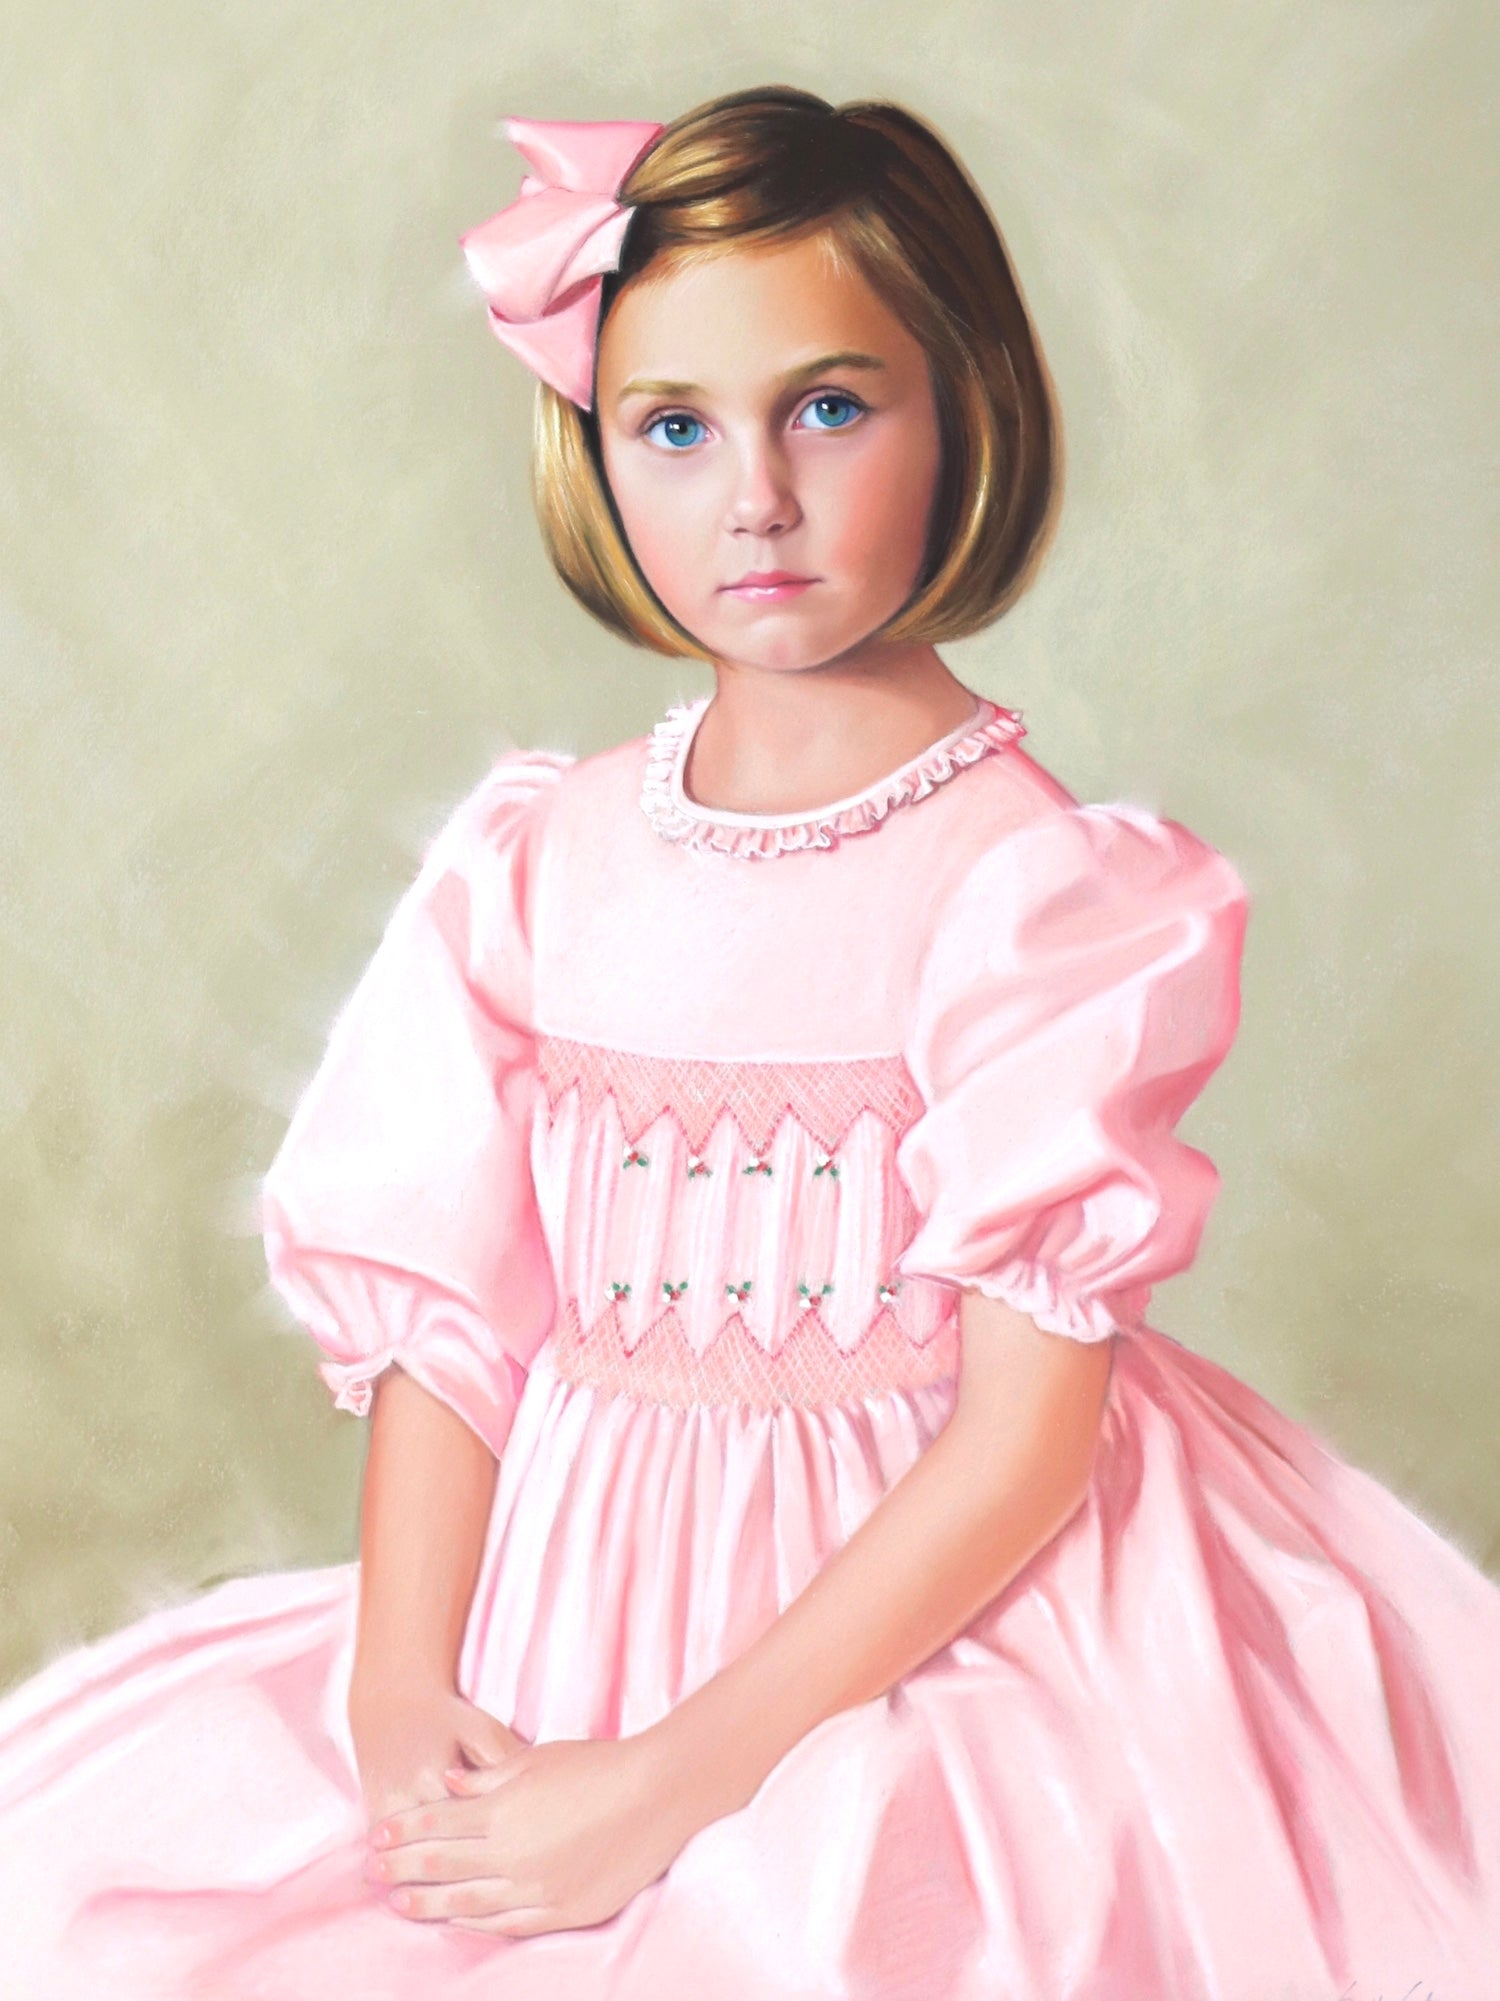 Sally Gates pastel portrait artist - Celebrating the magic of childhood